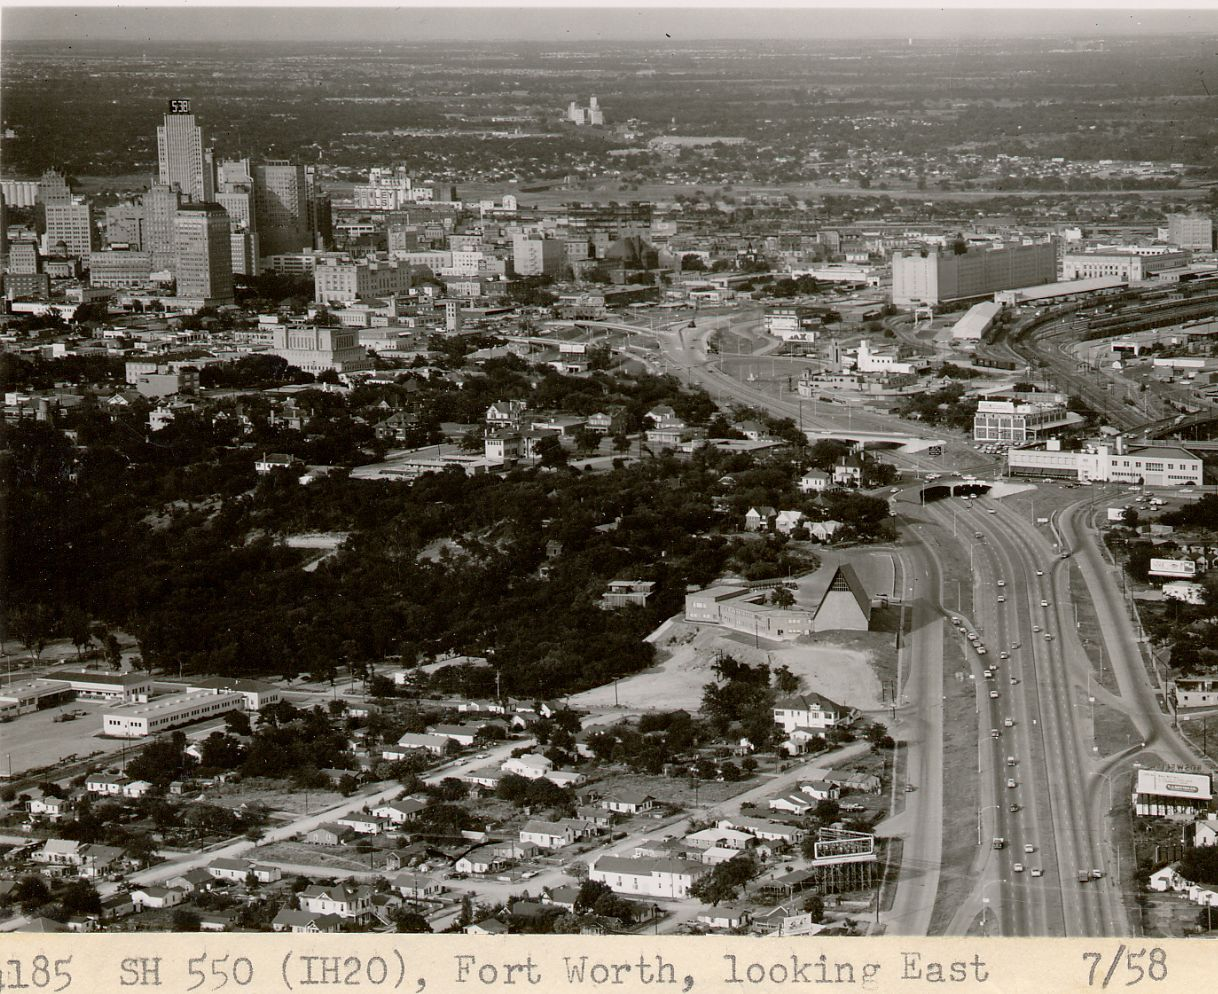 Fort Worth - Aerial View 1930's - Historic Photographs ...